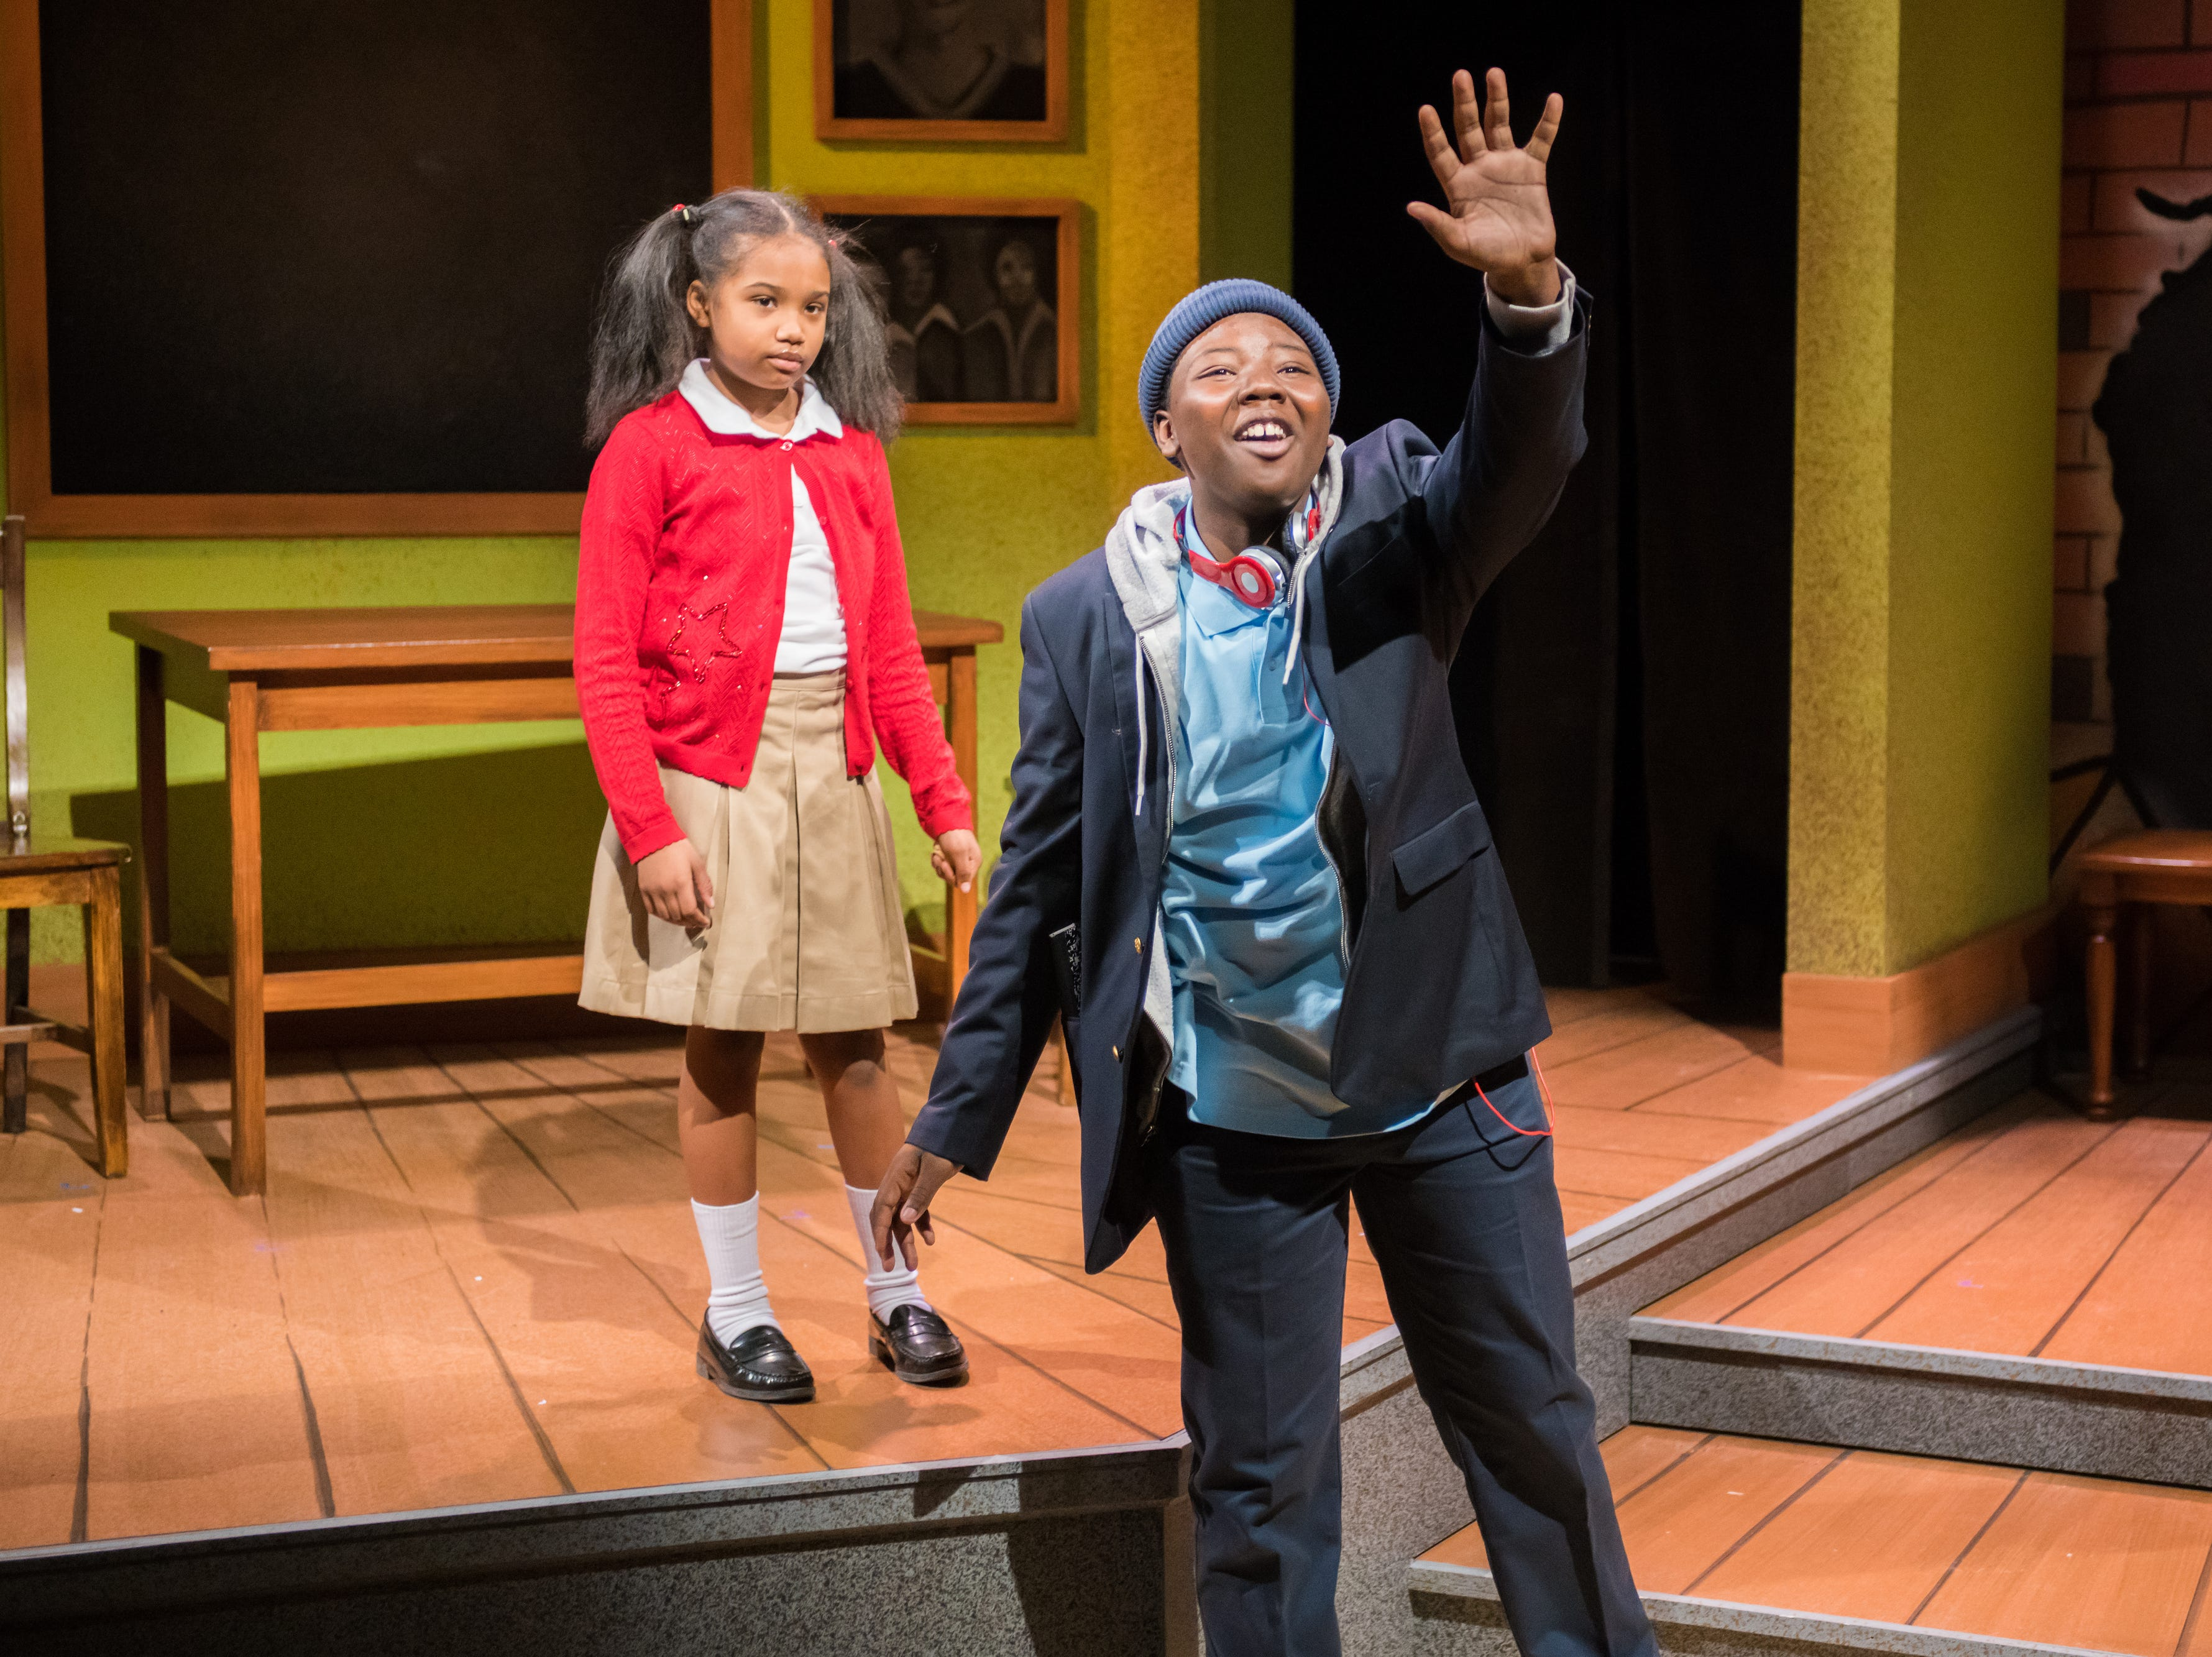 """Ronna Kelly and Jakobie Jackson perform in First Stage's production of """"Locomotion"""" by Jacqueline Woodson, which continues through Feb. 24 at the Milwaukee Youth Arts Center, 325 W. Walnut St."""